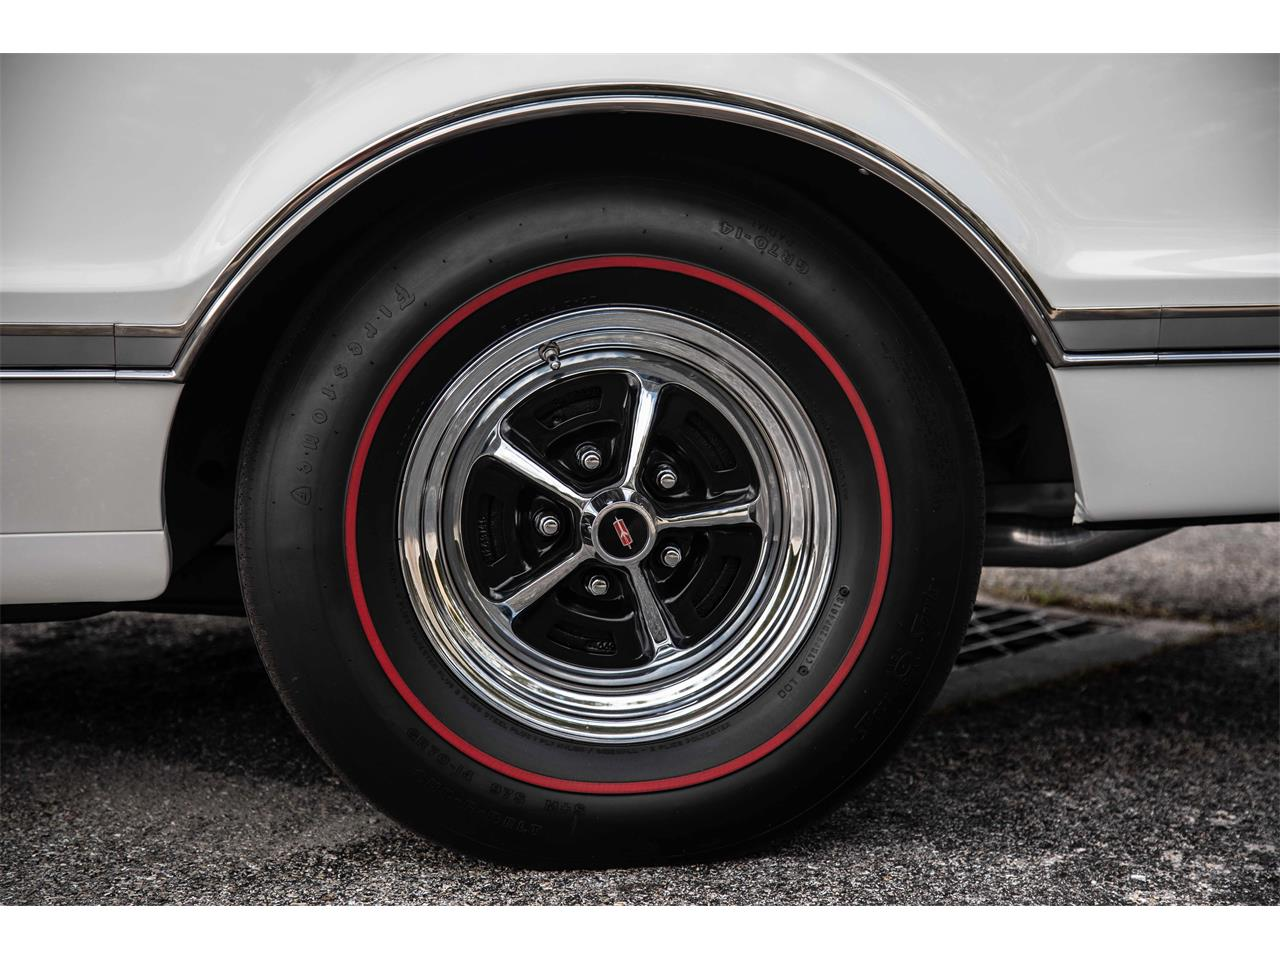 Large Picture of '66 Oldsmobile 442 located in Florida Offered by Exquisite Auto - PIES